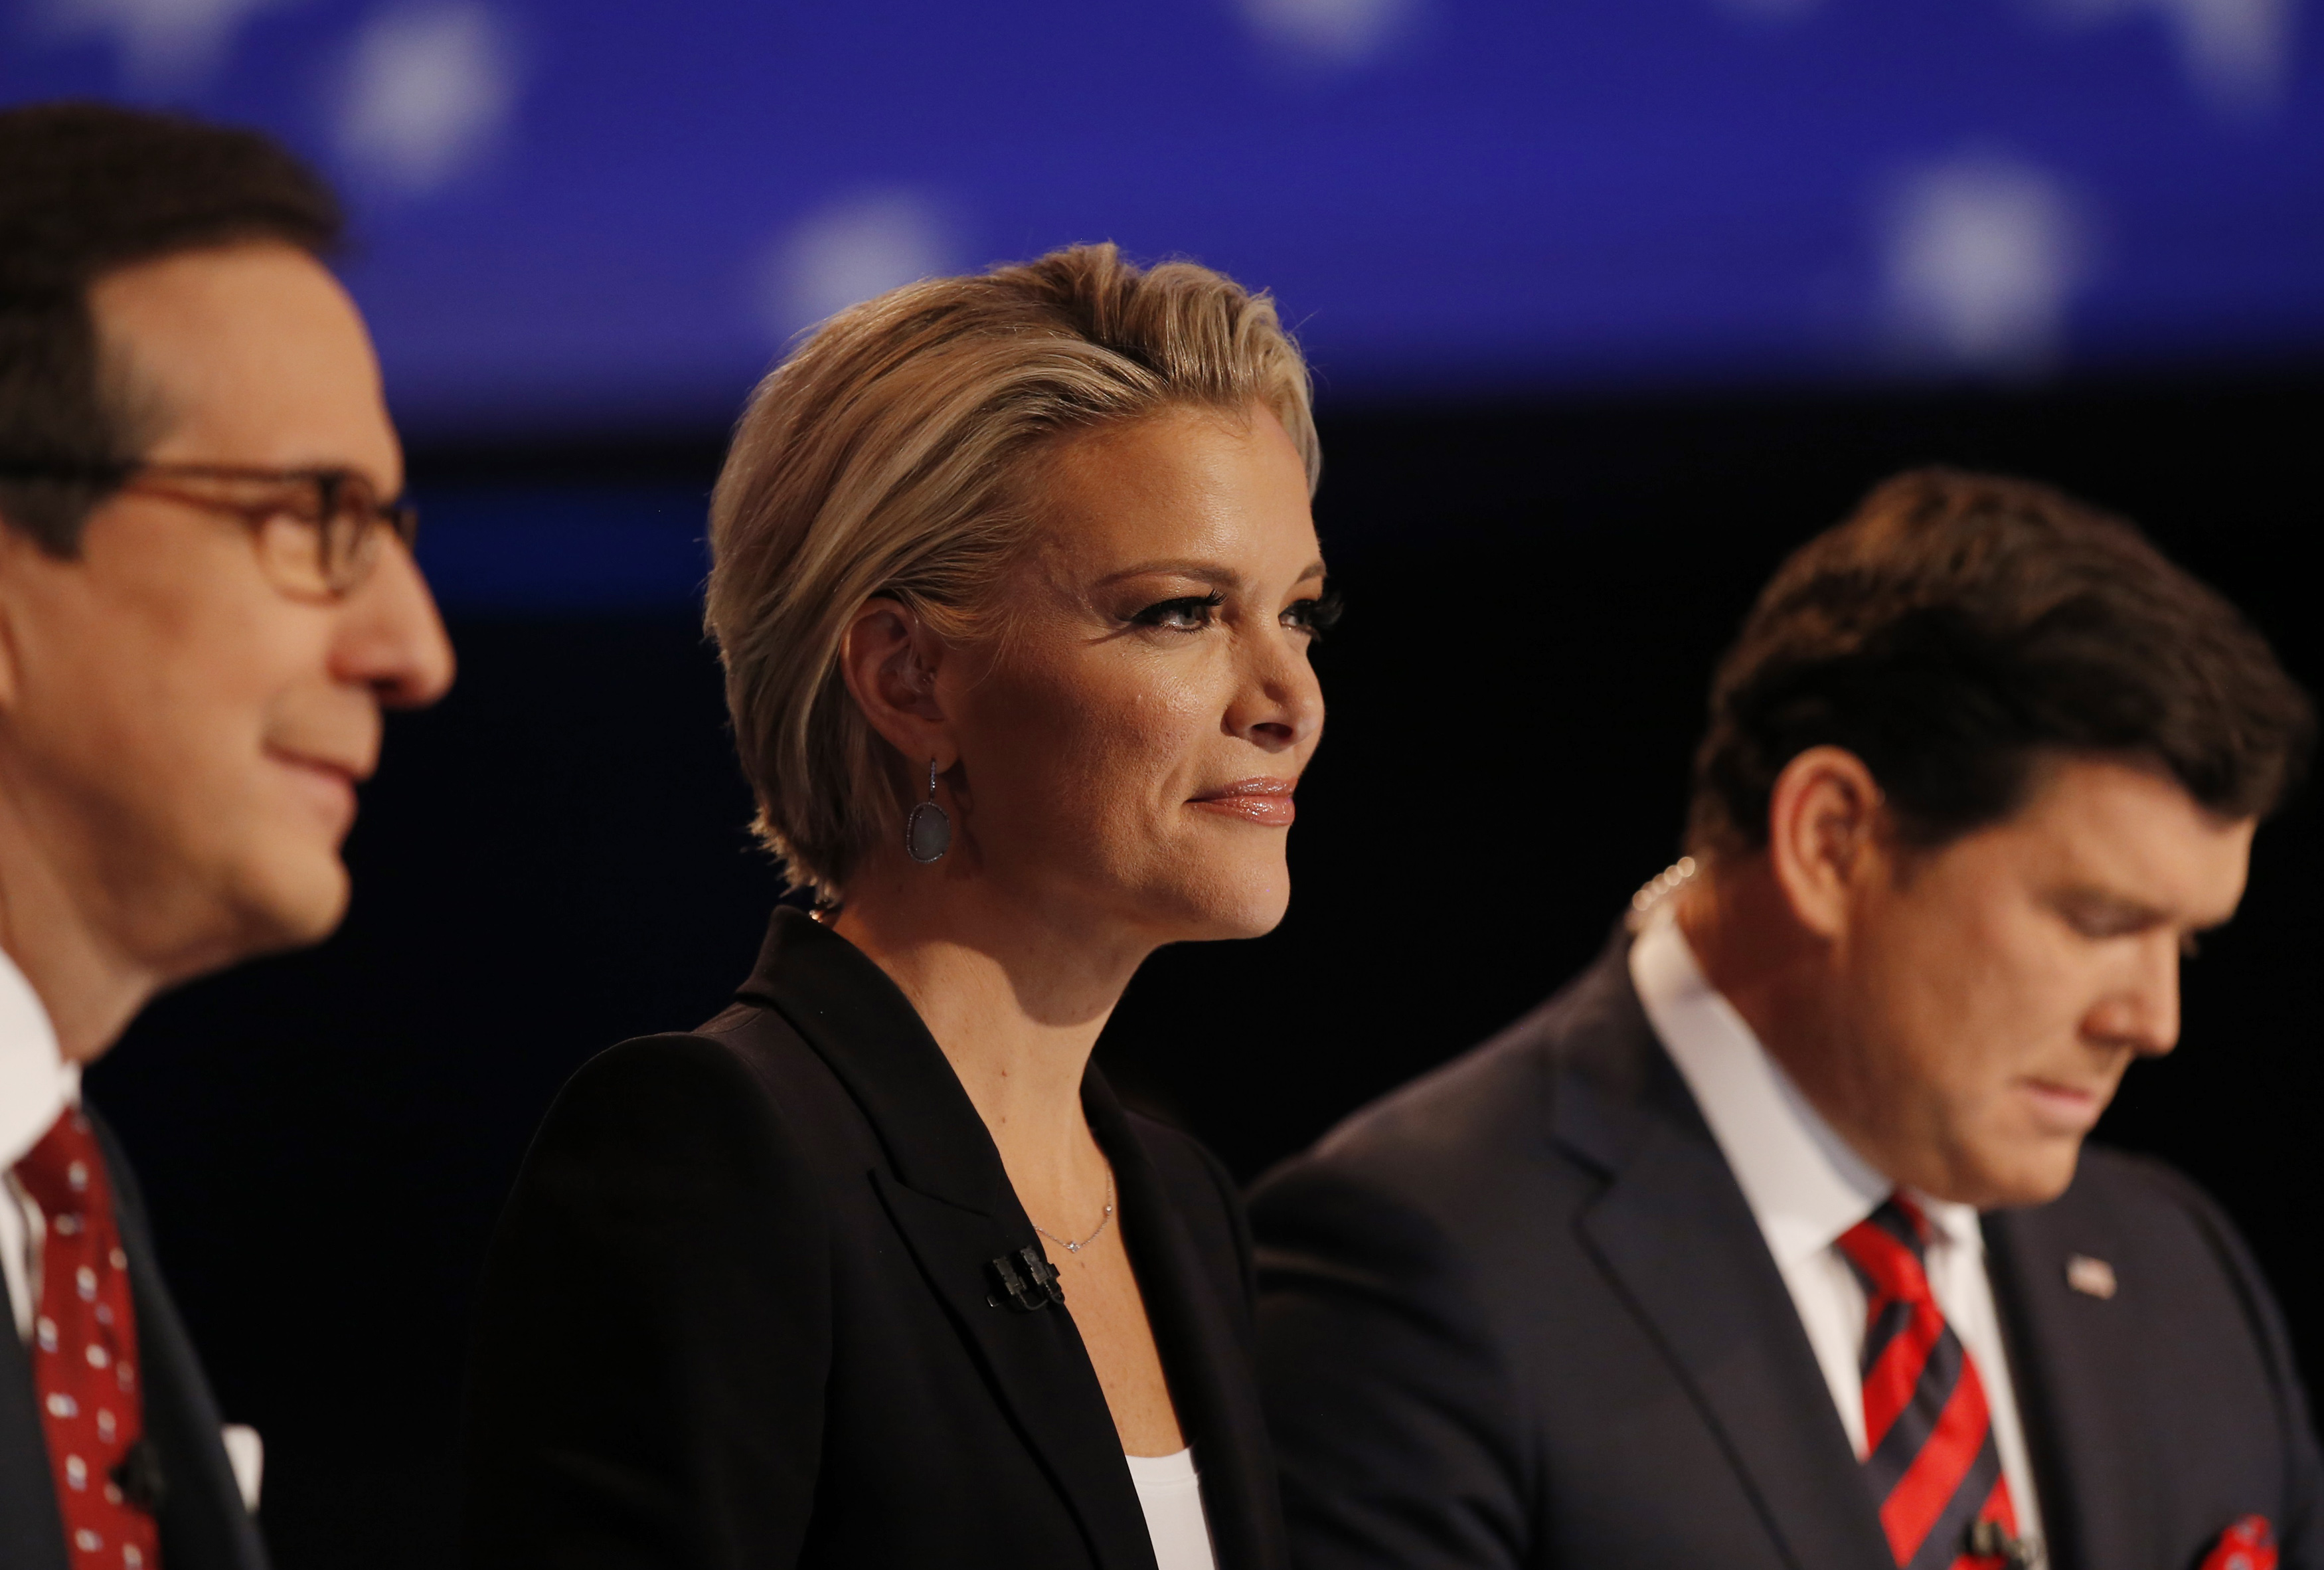 Fox News Channel anchor Kelly sits between fellow debate moderators Wallace and Baier during the debate held by Fox News for the top 2016 U.S. Republican presidential candidates in Des Moines